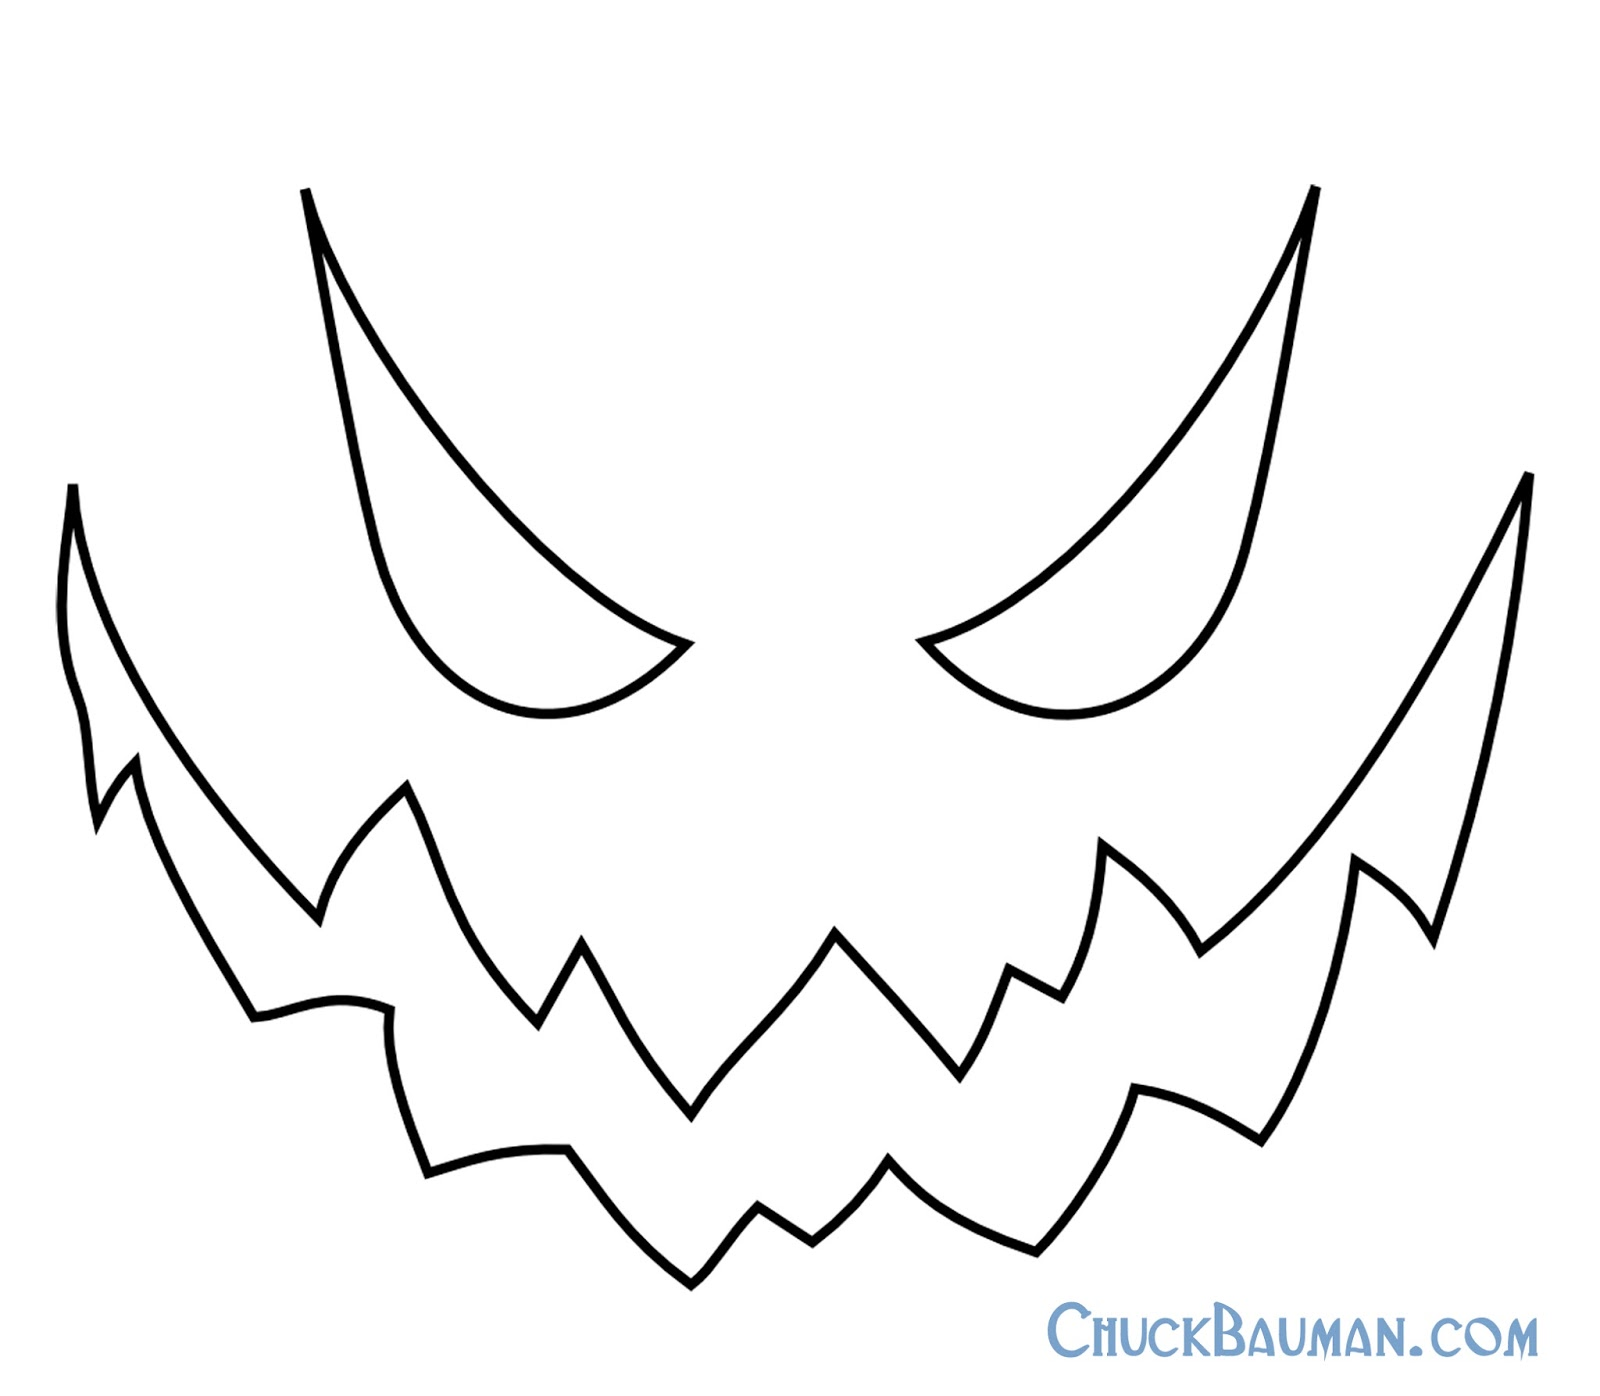 Free printable templates for pumpkin carving - Free Printable Jack Skellington Pumpkin Carving Stencil Templates Download